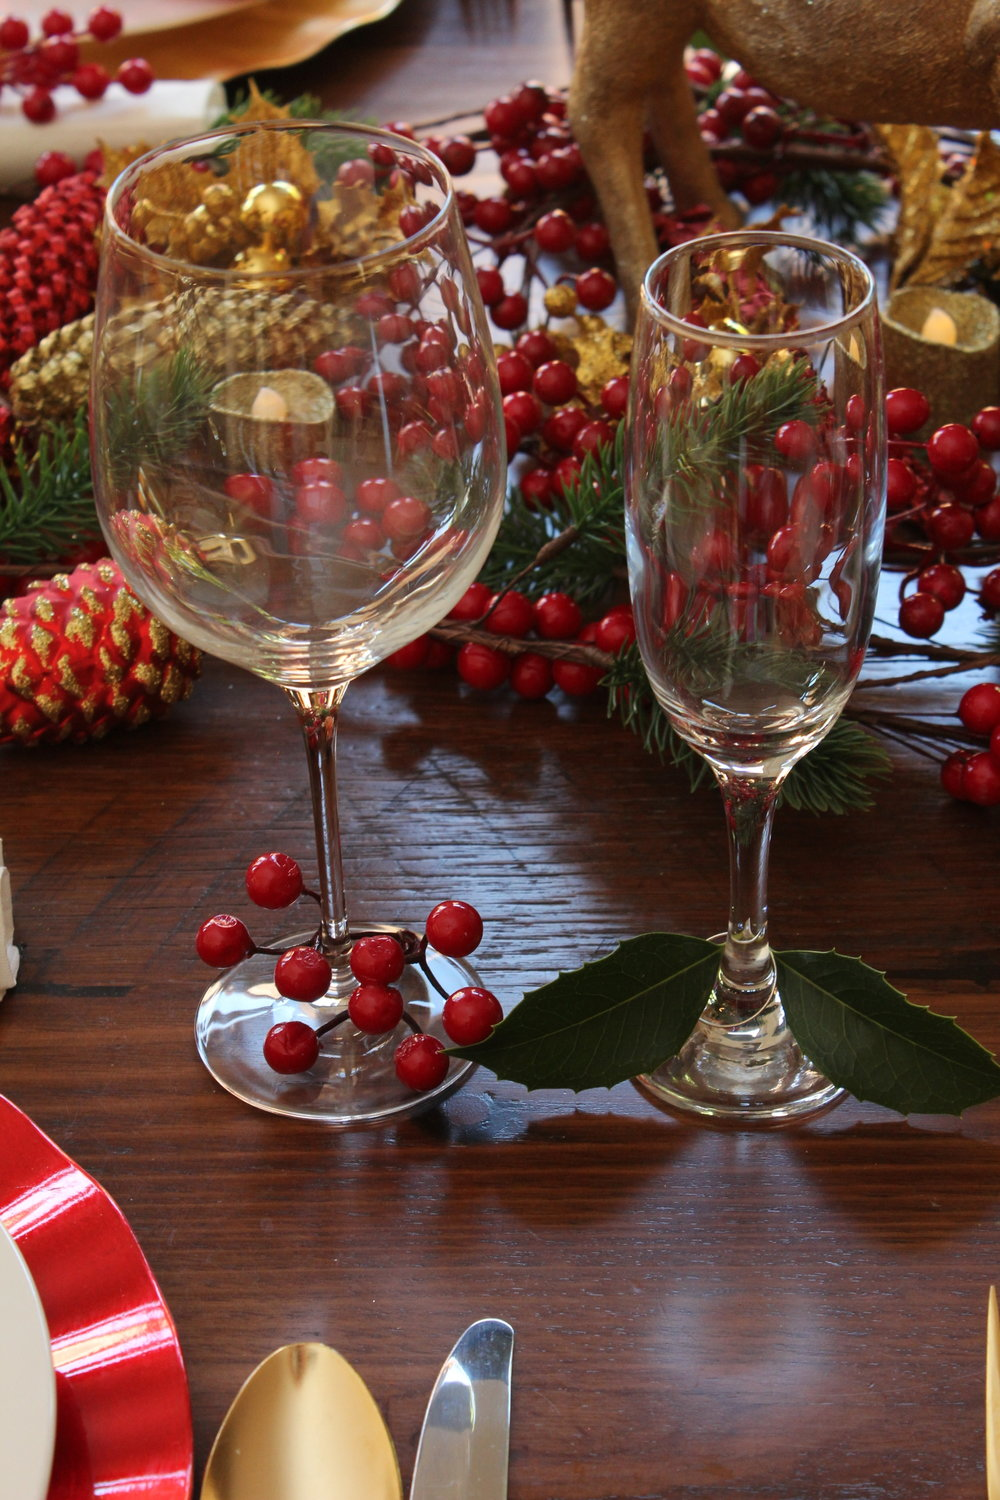 Christmas Stemware with Berries